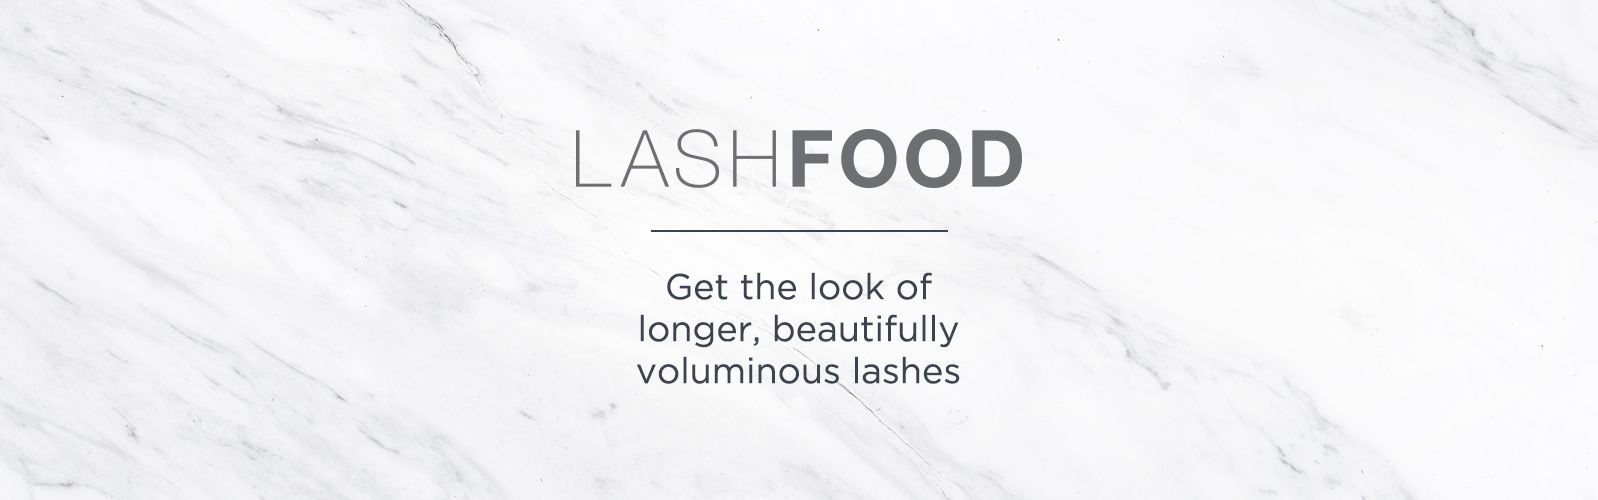 LASHFOOD. Get the look of longer, beautifully voluminous lashes